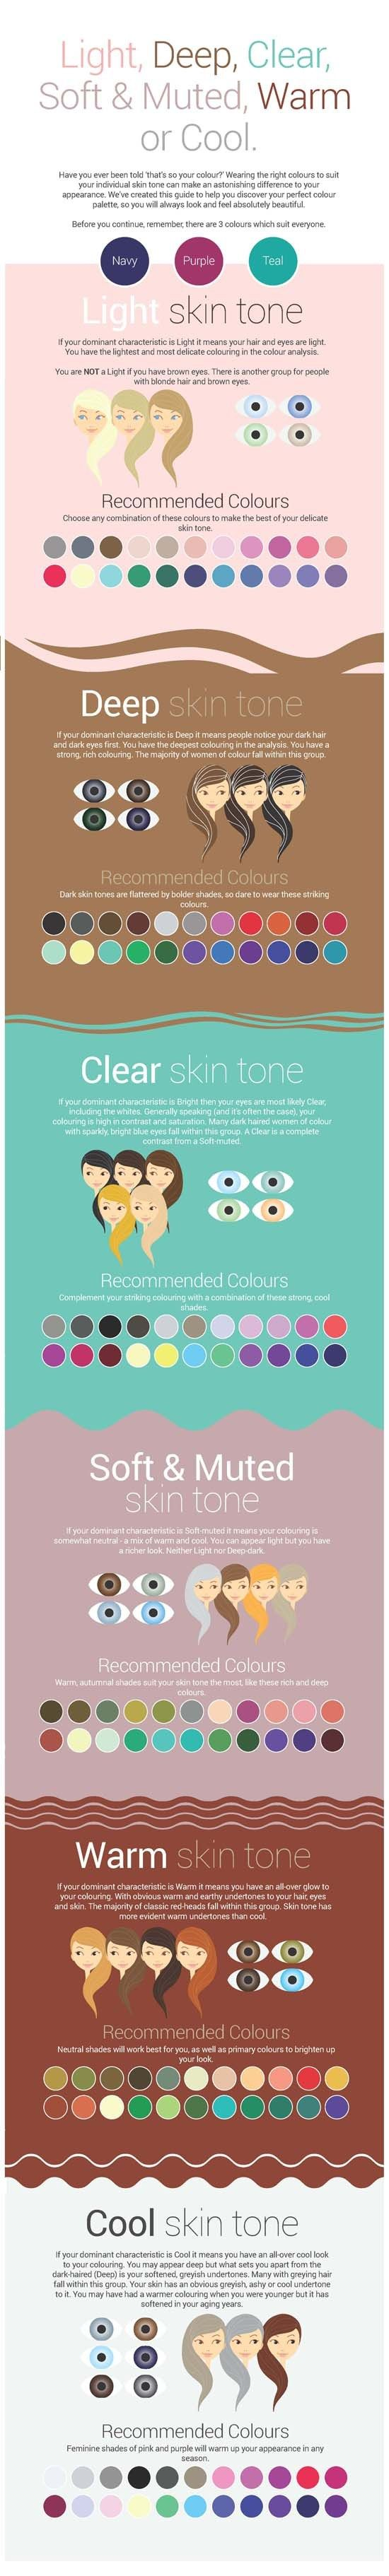 What Colors to Wear to Match Your Skin Tone. I think I'm Warm Skin Tone... hope so, 'cause I like all those greens and teals :)